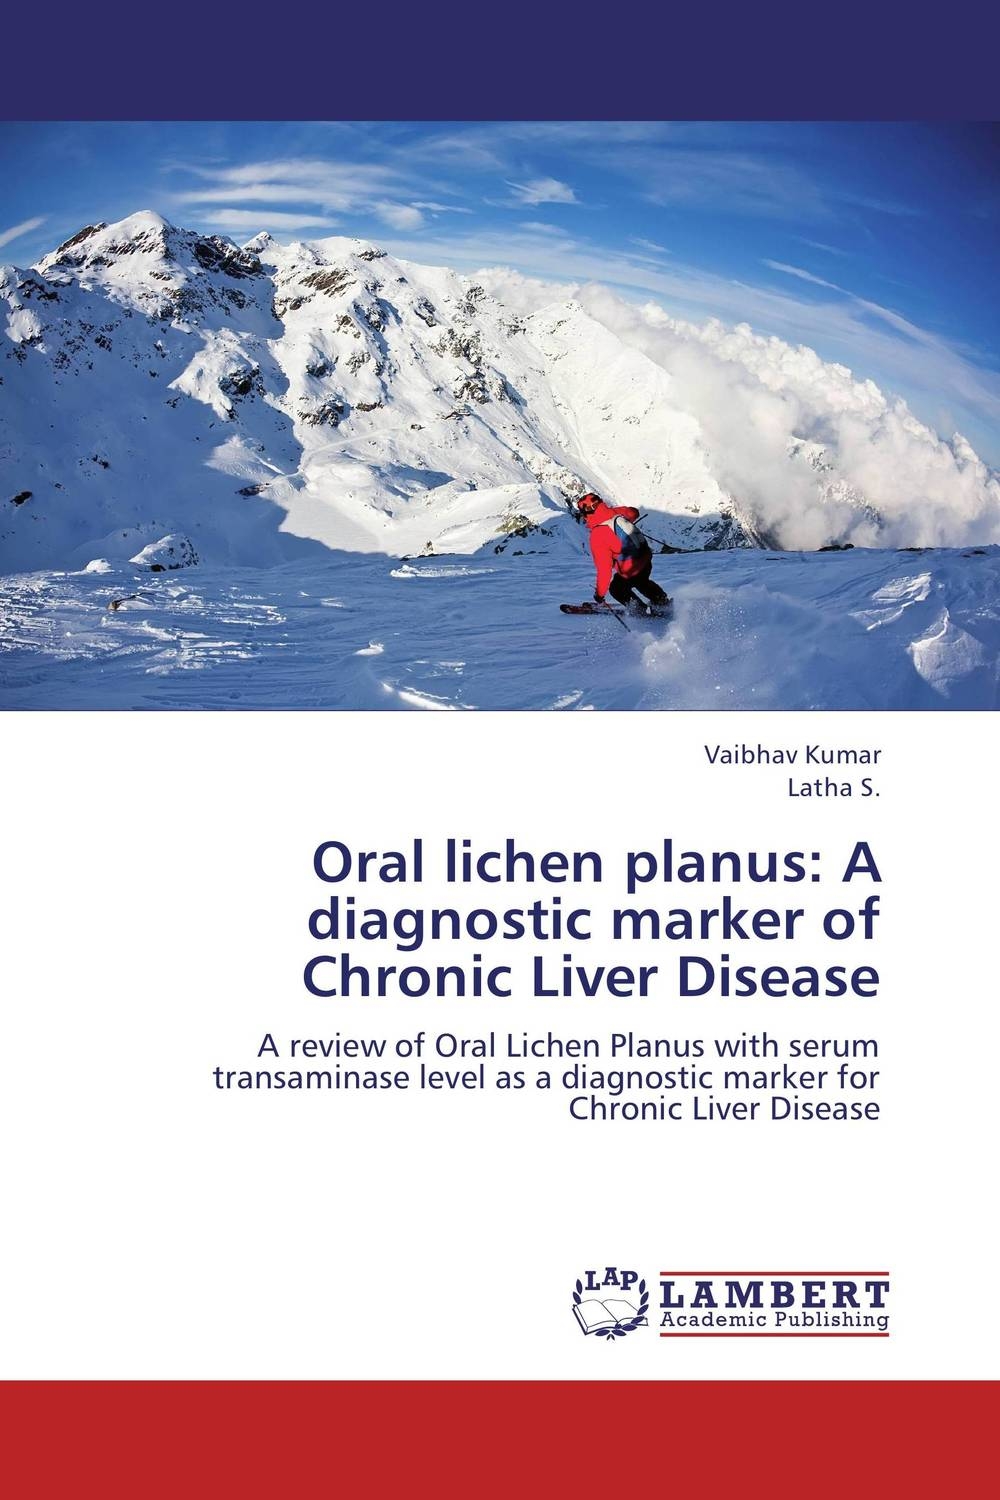 Oral lichen planus: A diagnostic marker of Chronic Liver Disease vrunda shah and vipul shah herbal therapy for liver disease